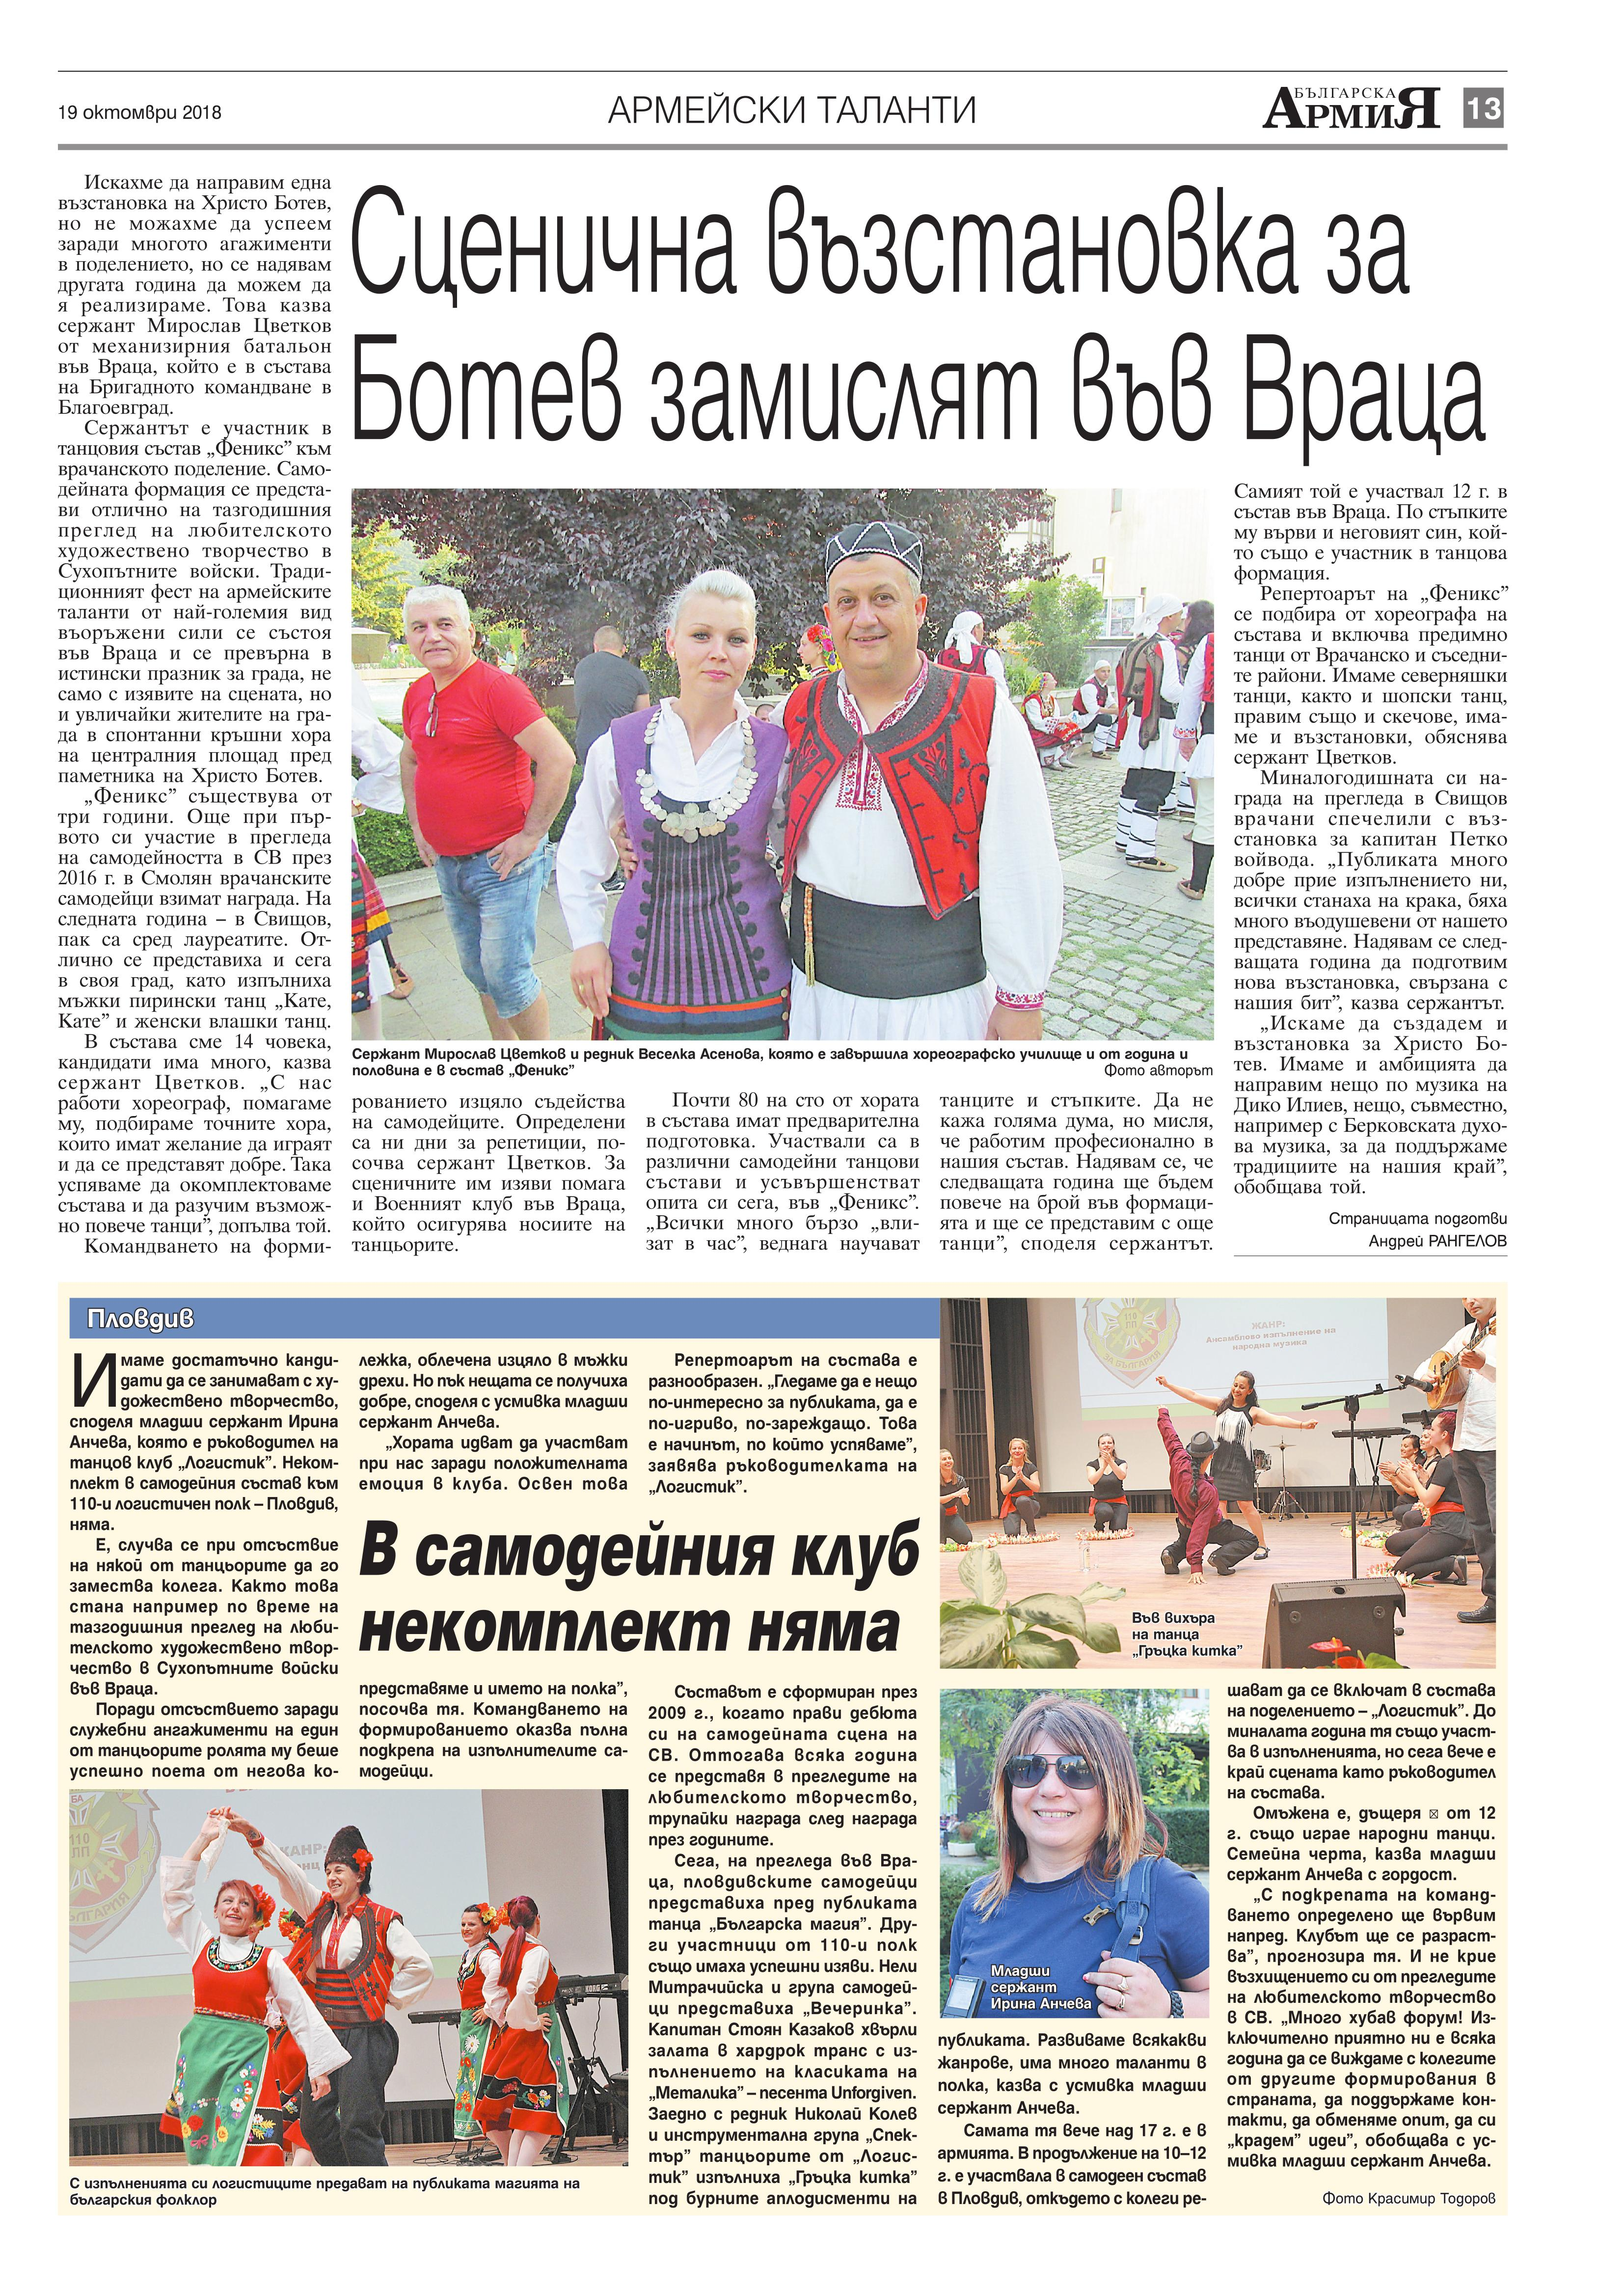 https://armymedia.bg/wp-content/uploads/2015/06/13.page1_-70.jpg